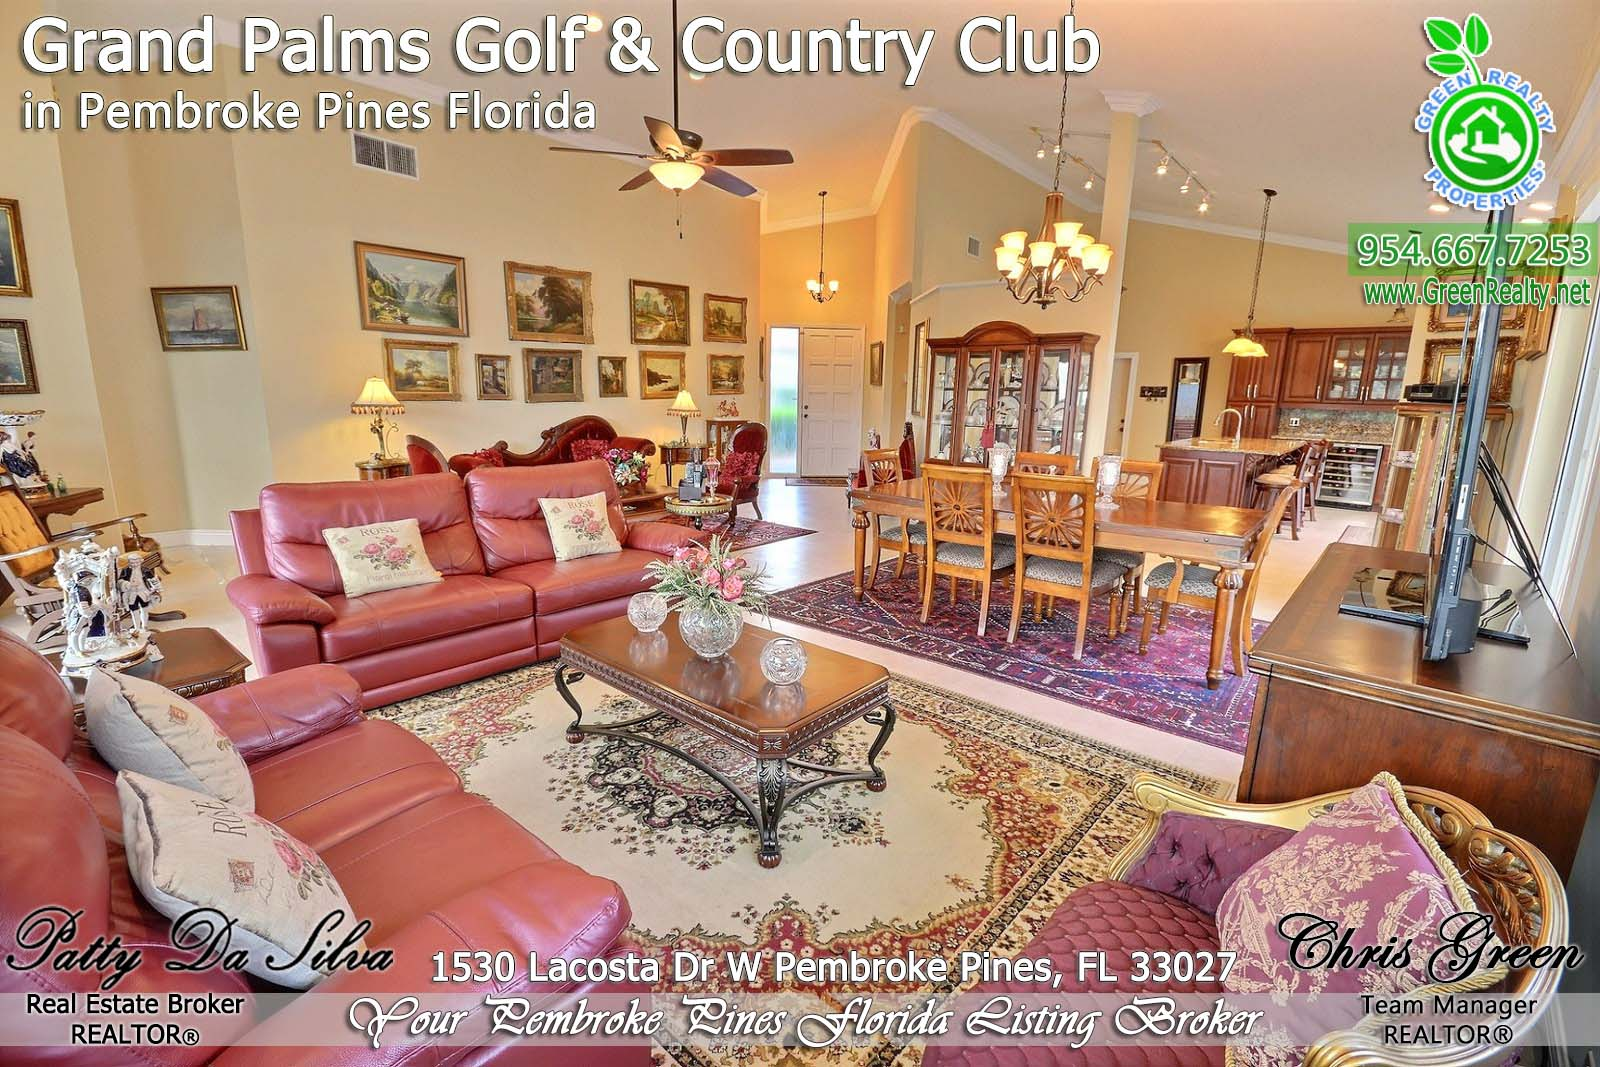 Pembroke Pines Home Sales in Grand Palms